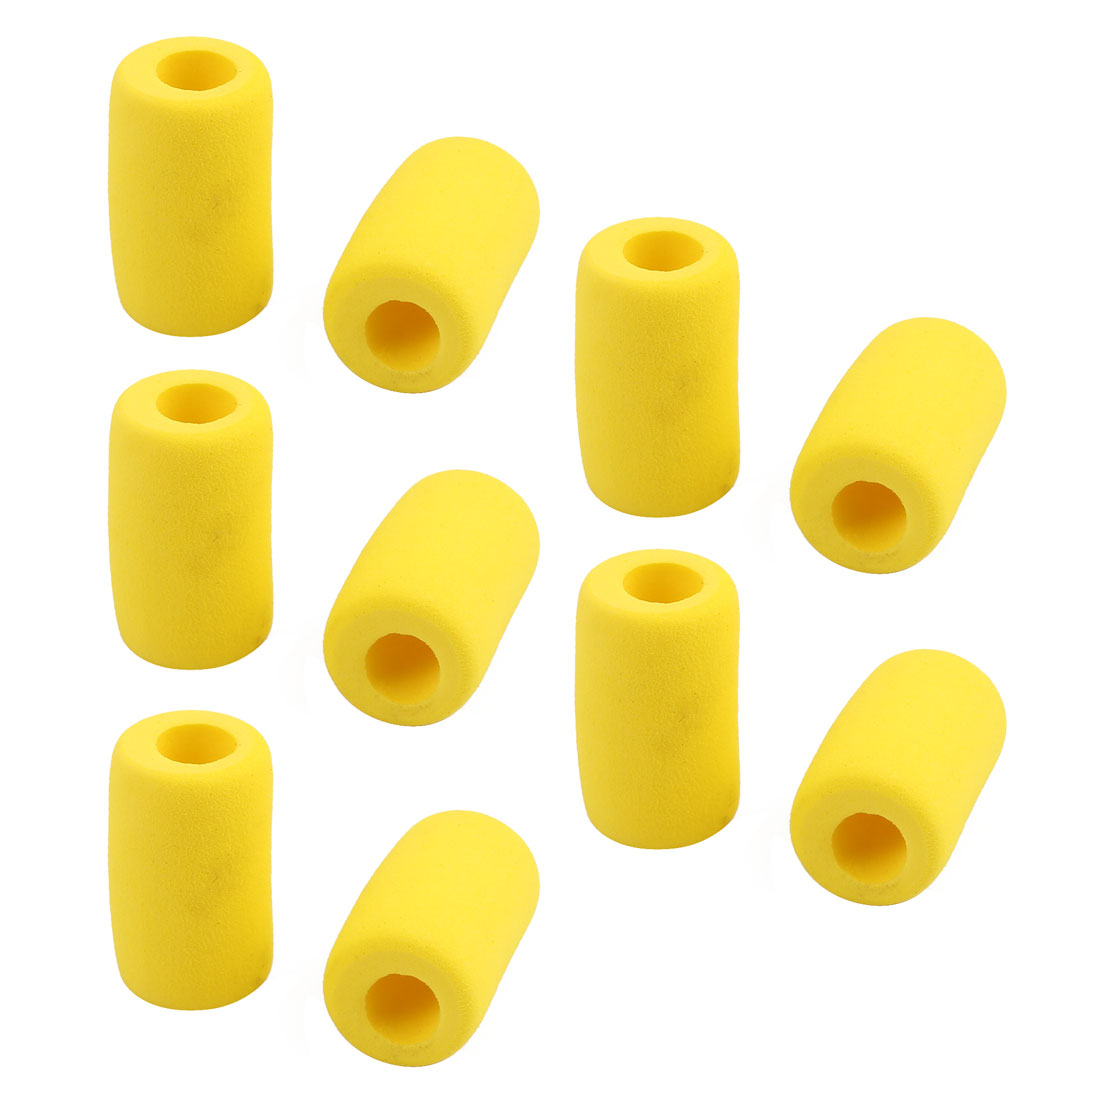 10Pair 18x30mm Anti Vibration Rubbers for Helicopter Tripod And Boat Yellow 9mm Hole Dia